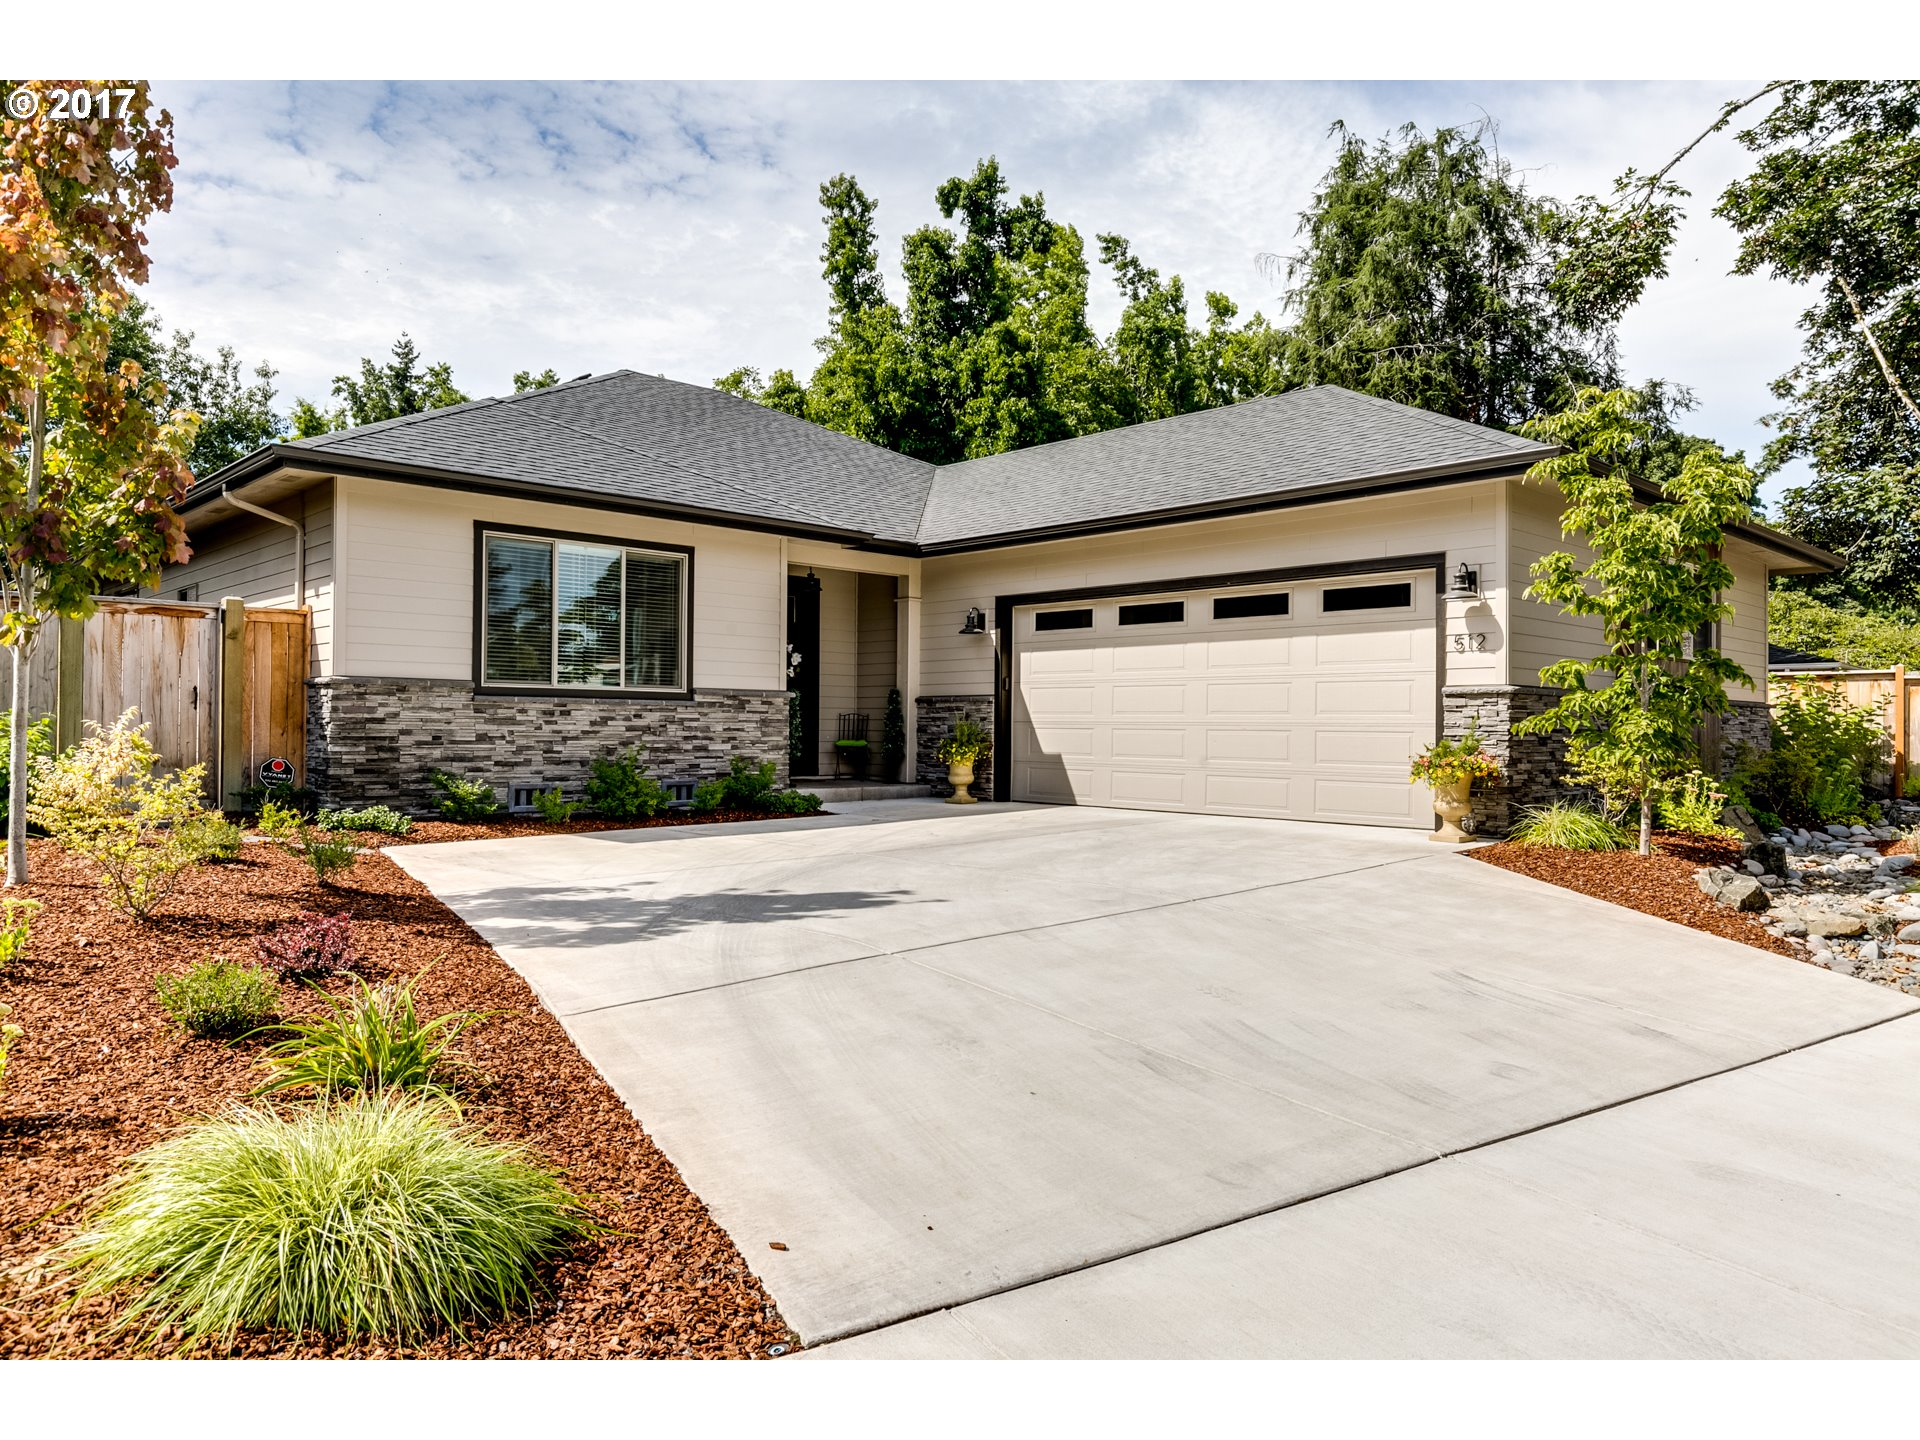 512 SILVER MEADOWS DR, Eugene, OR 97404